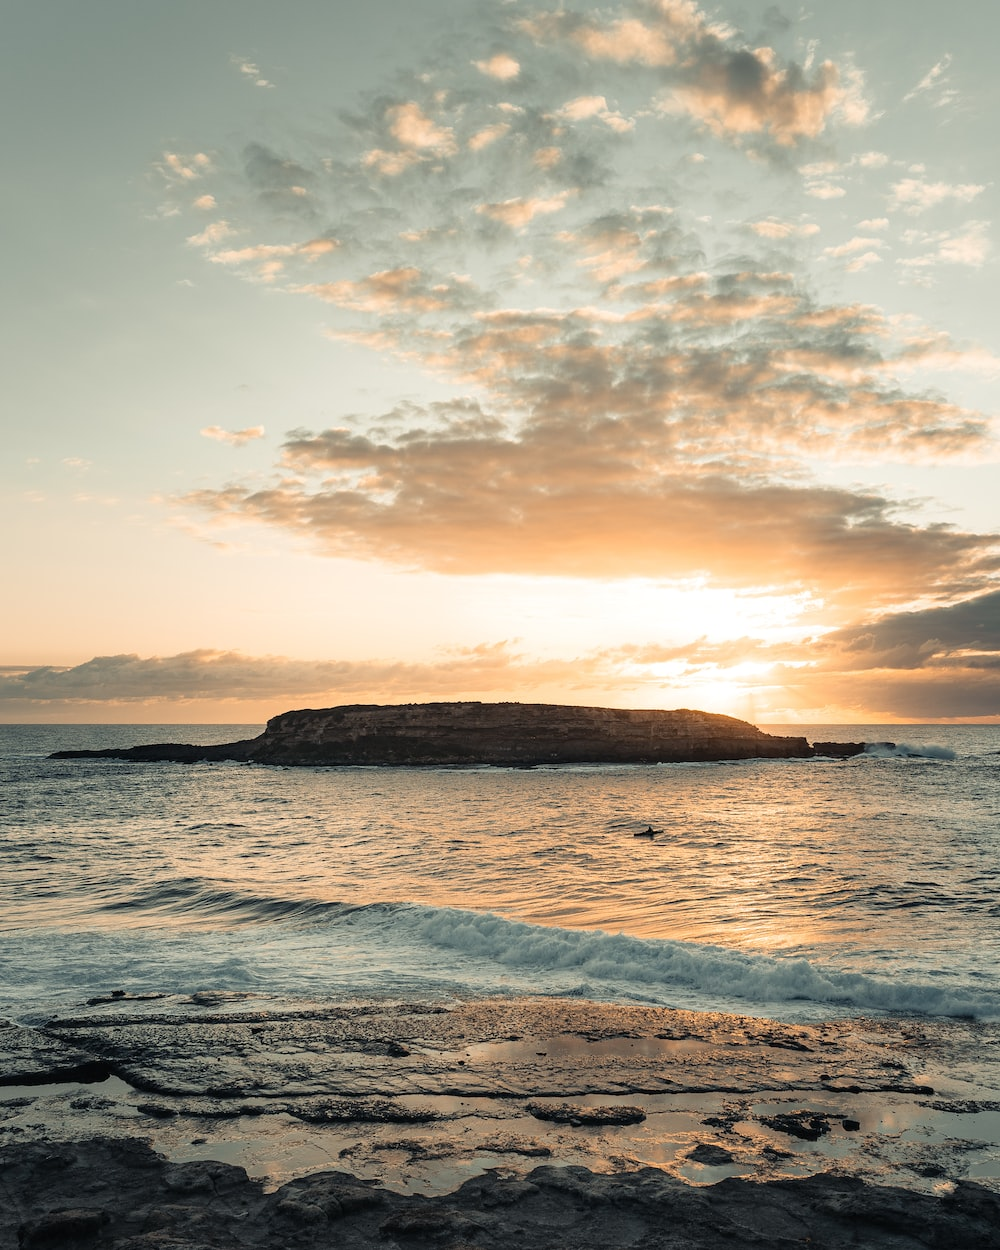 brown rock formation on sea during sunset